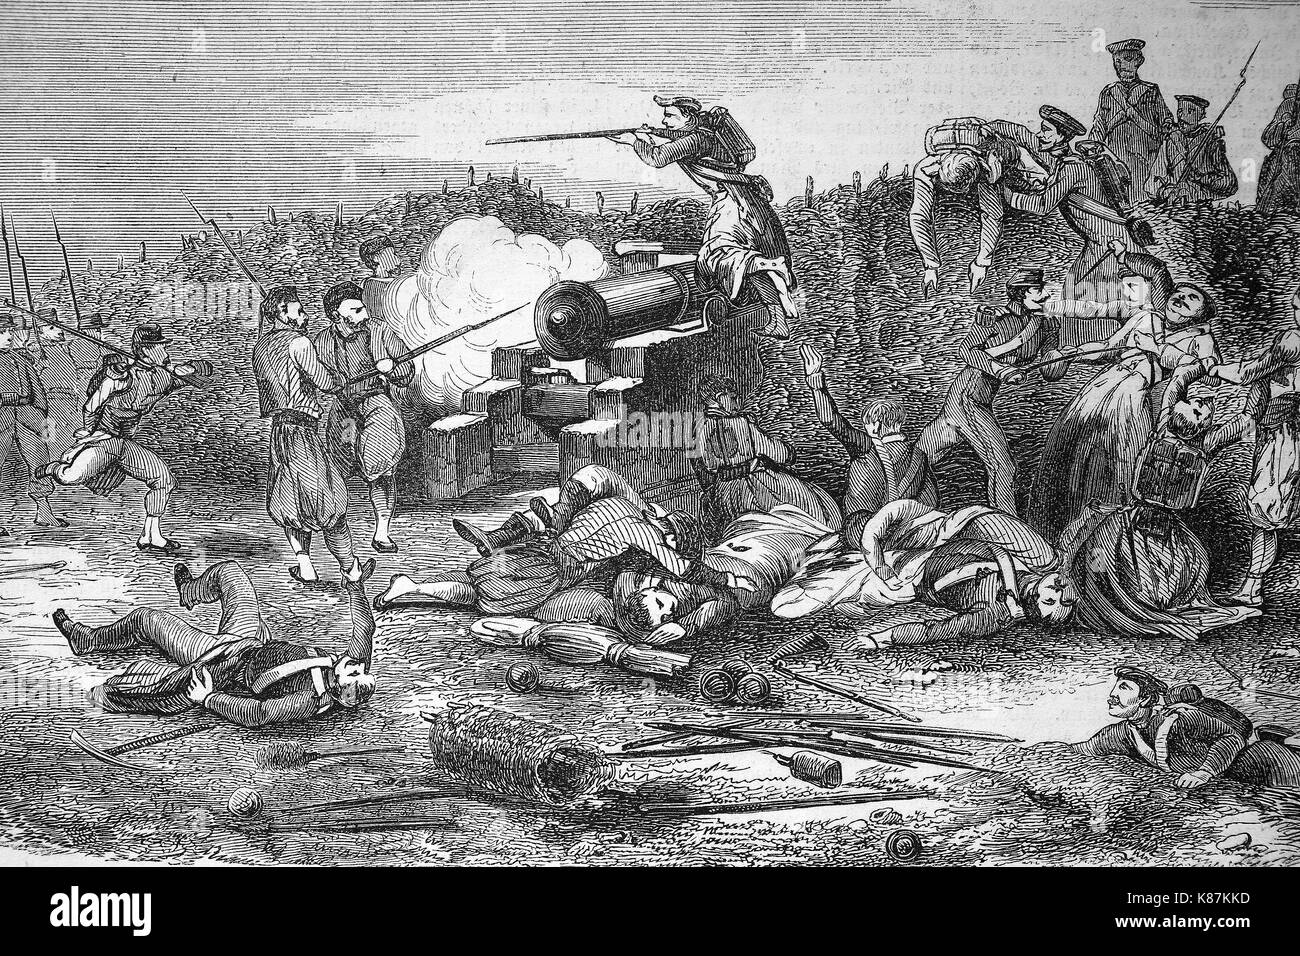 Crimean War 1855, the Russian army attacks a French battery, Digital improved reproduction of an original woodprint from the 19th century - Stock Image